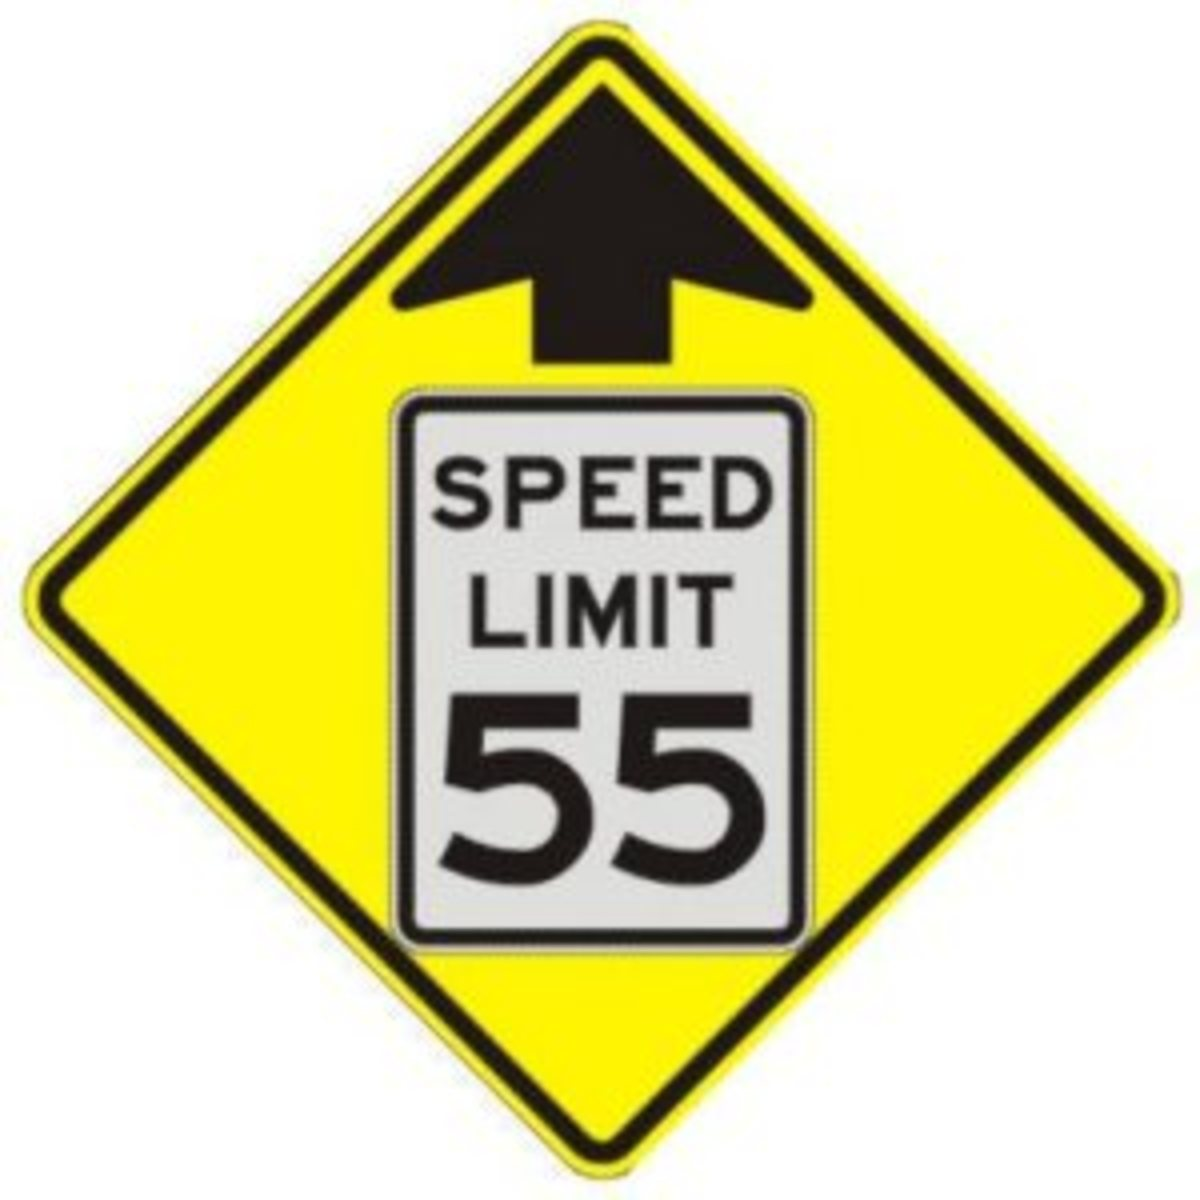 The speed of a moving object has no meaning unless it is measured relative to some reference point or reference frame